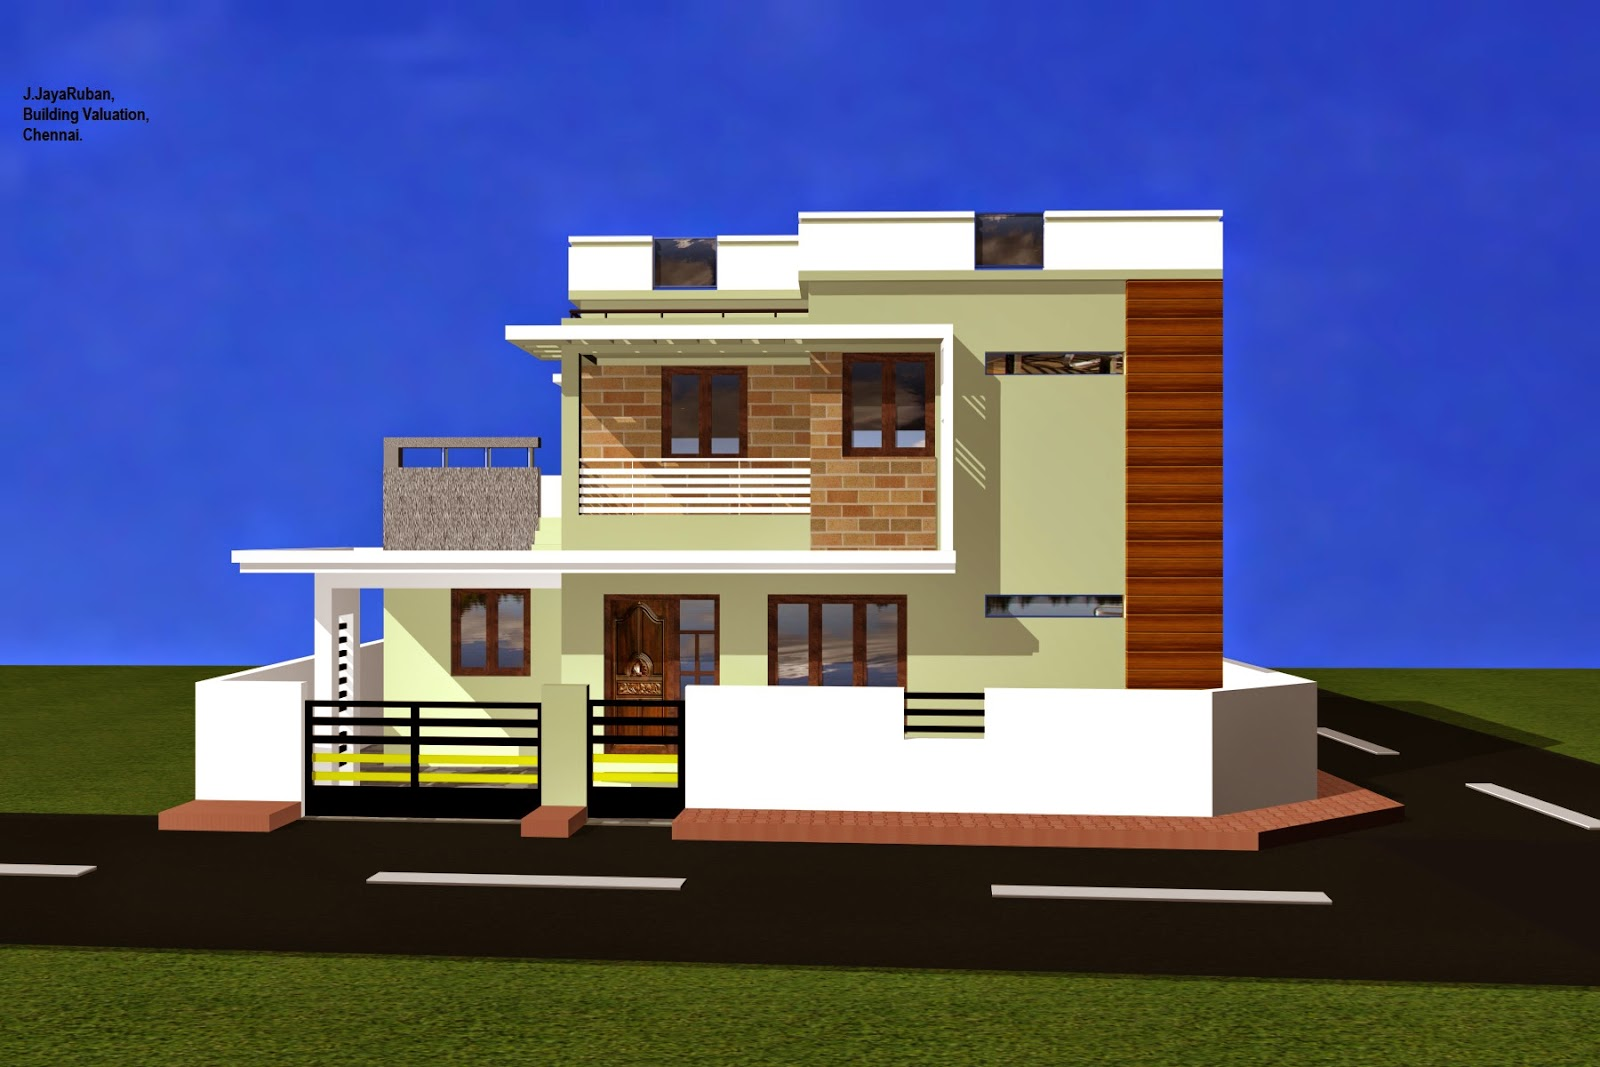 Elevations of residential buildings joy studio design for Elevation design photos residential houses